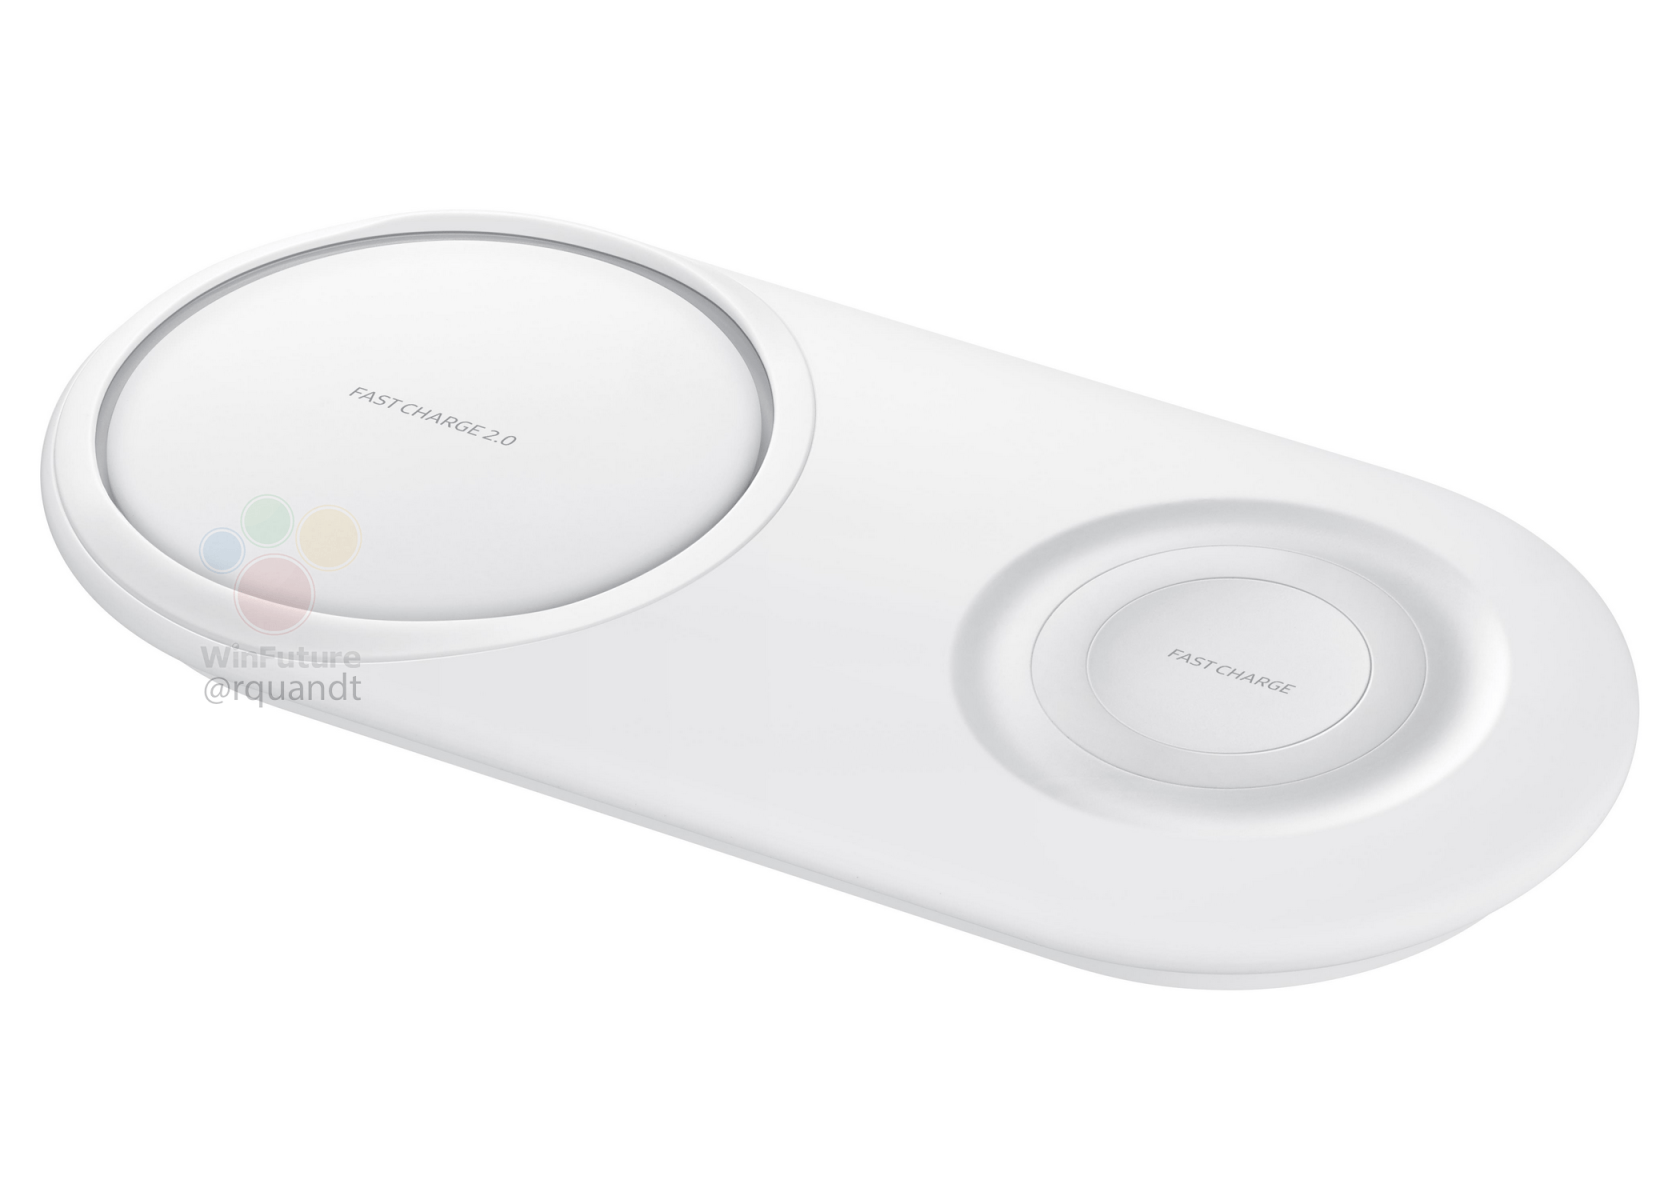 New Samsung Wireless Charging Pad and Power bank leaks ahead of the official launch 3